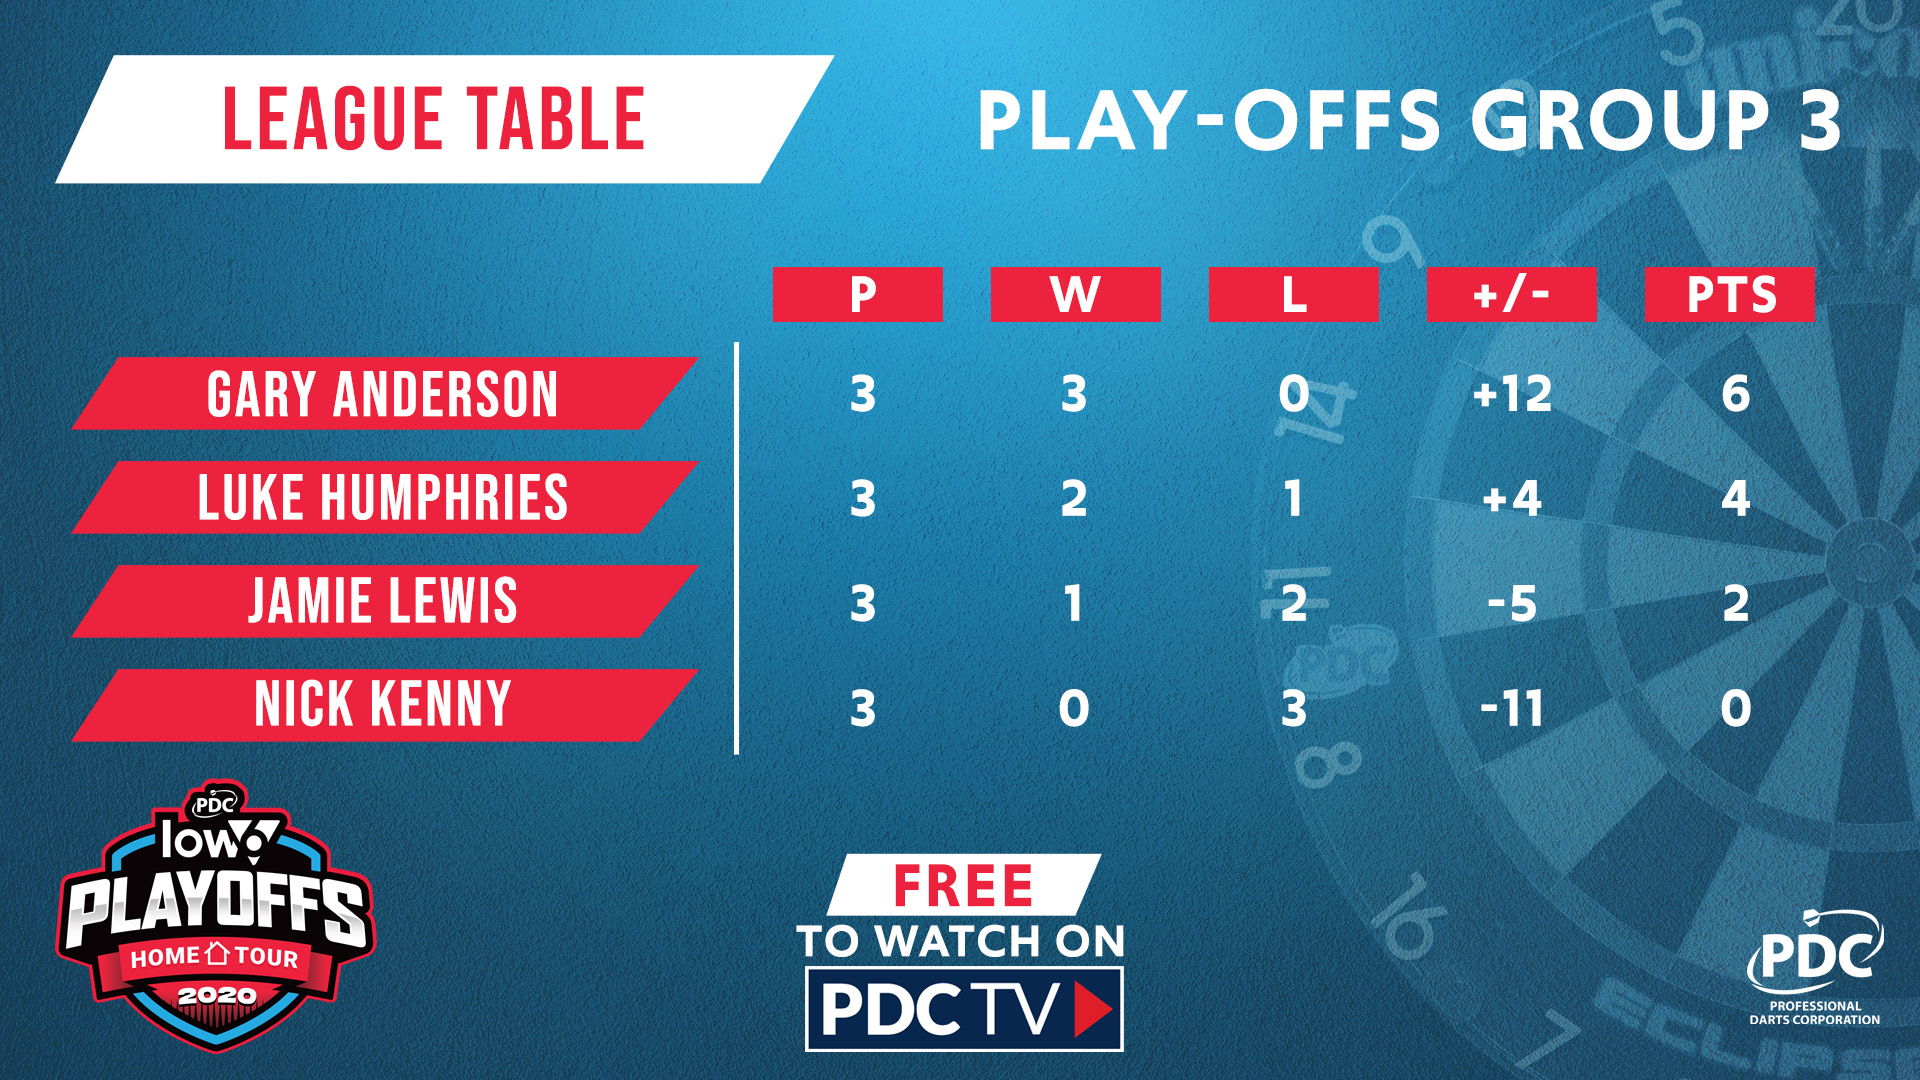 Home Tour Play-Offs Group Three table